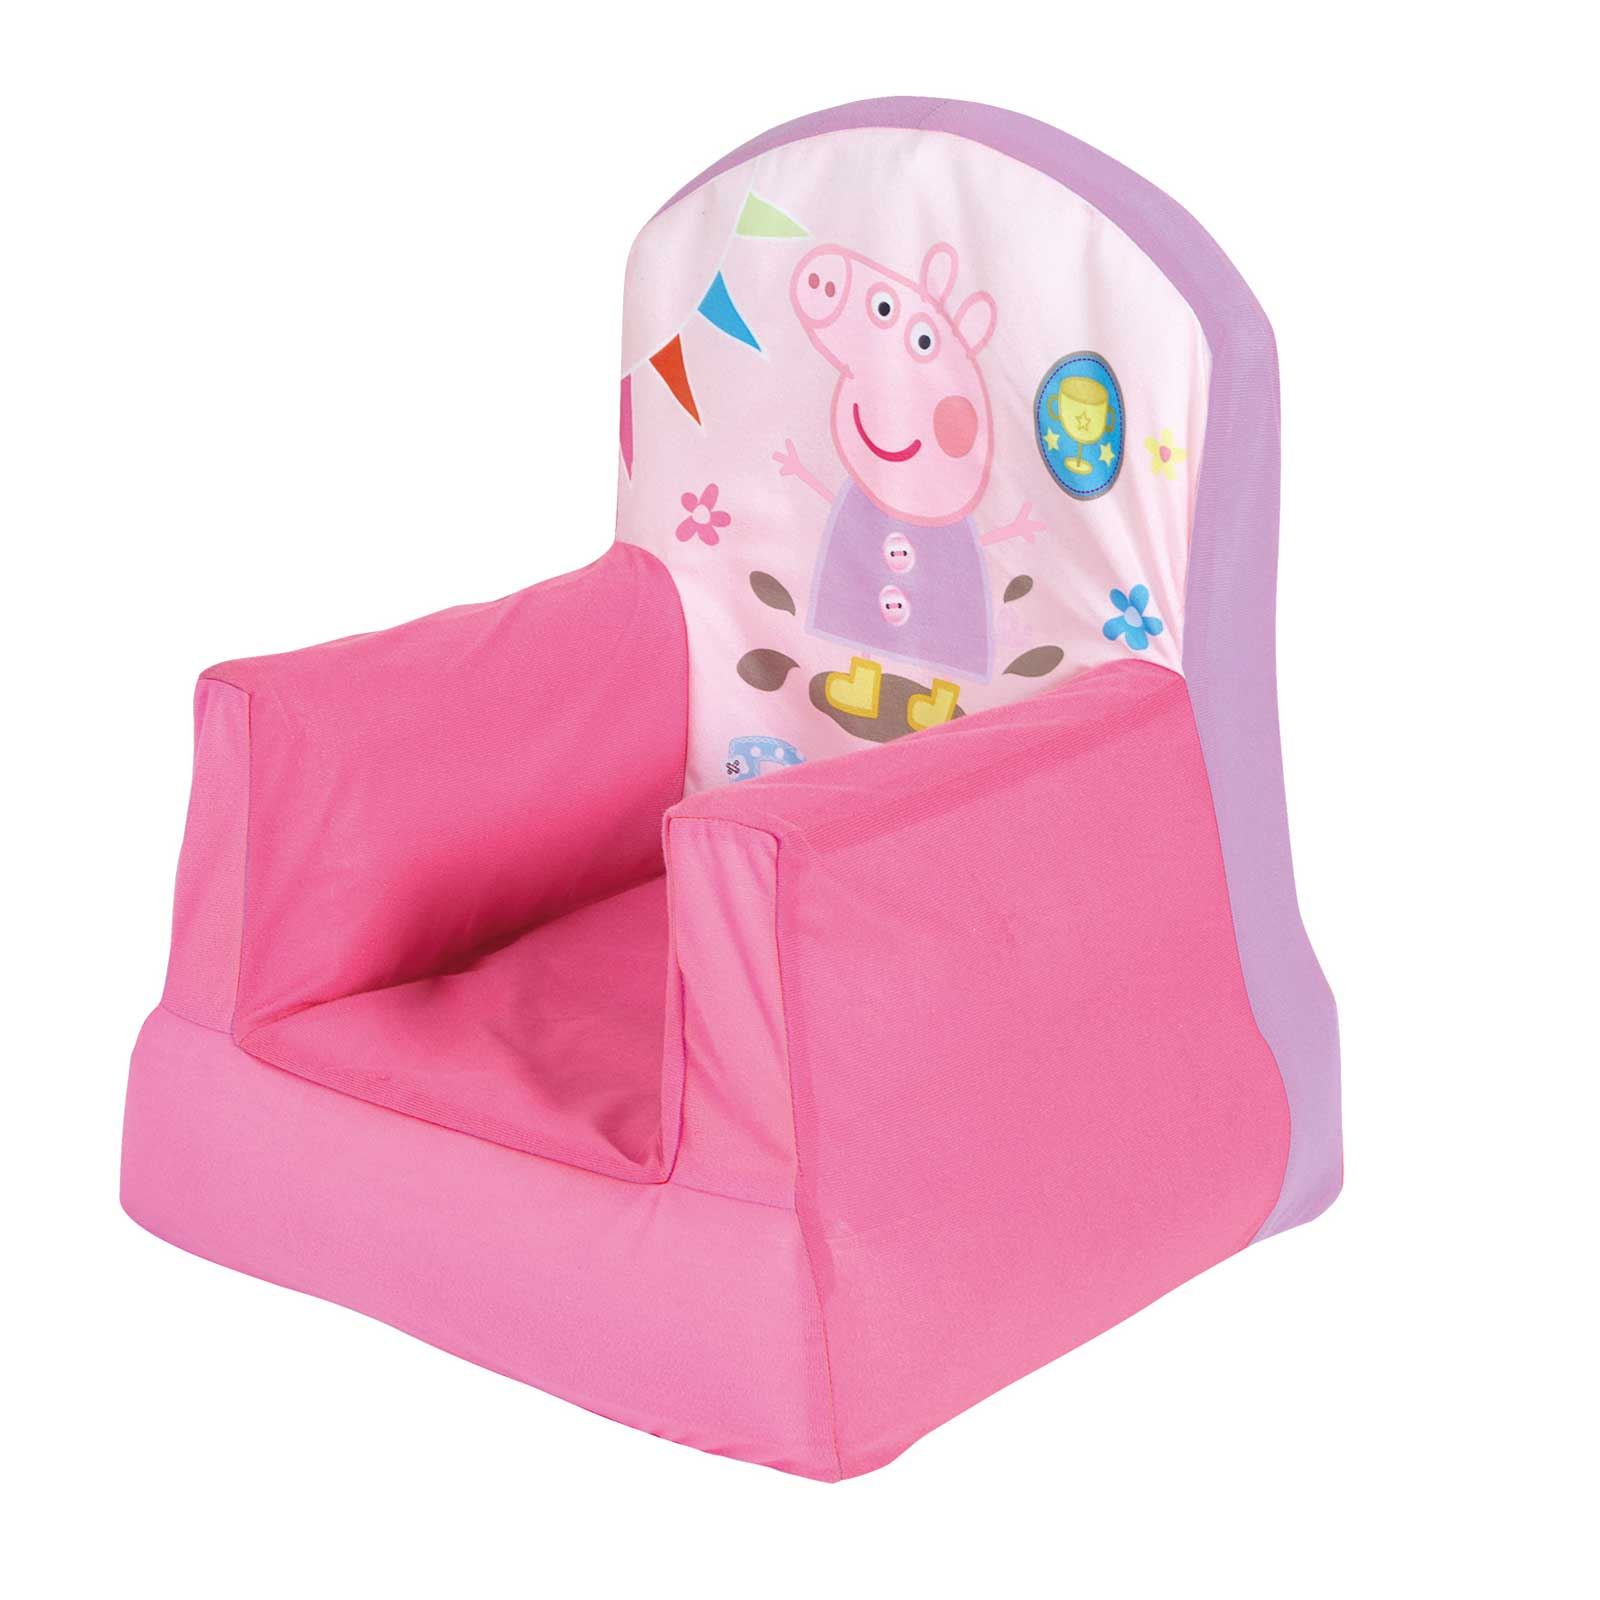 OFFICIAL DISNEY AND CHARACTER CHILDRENS COSY CHAIRS